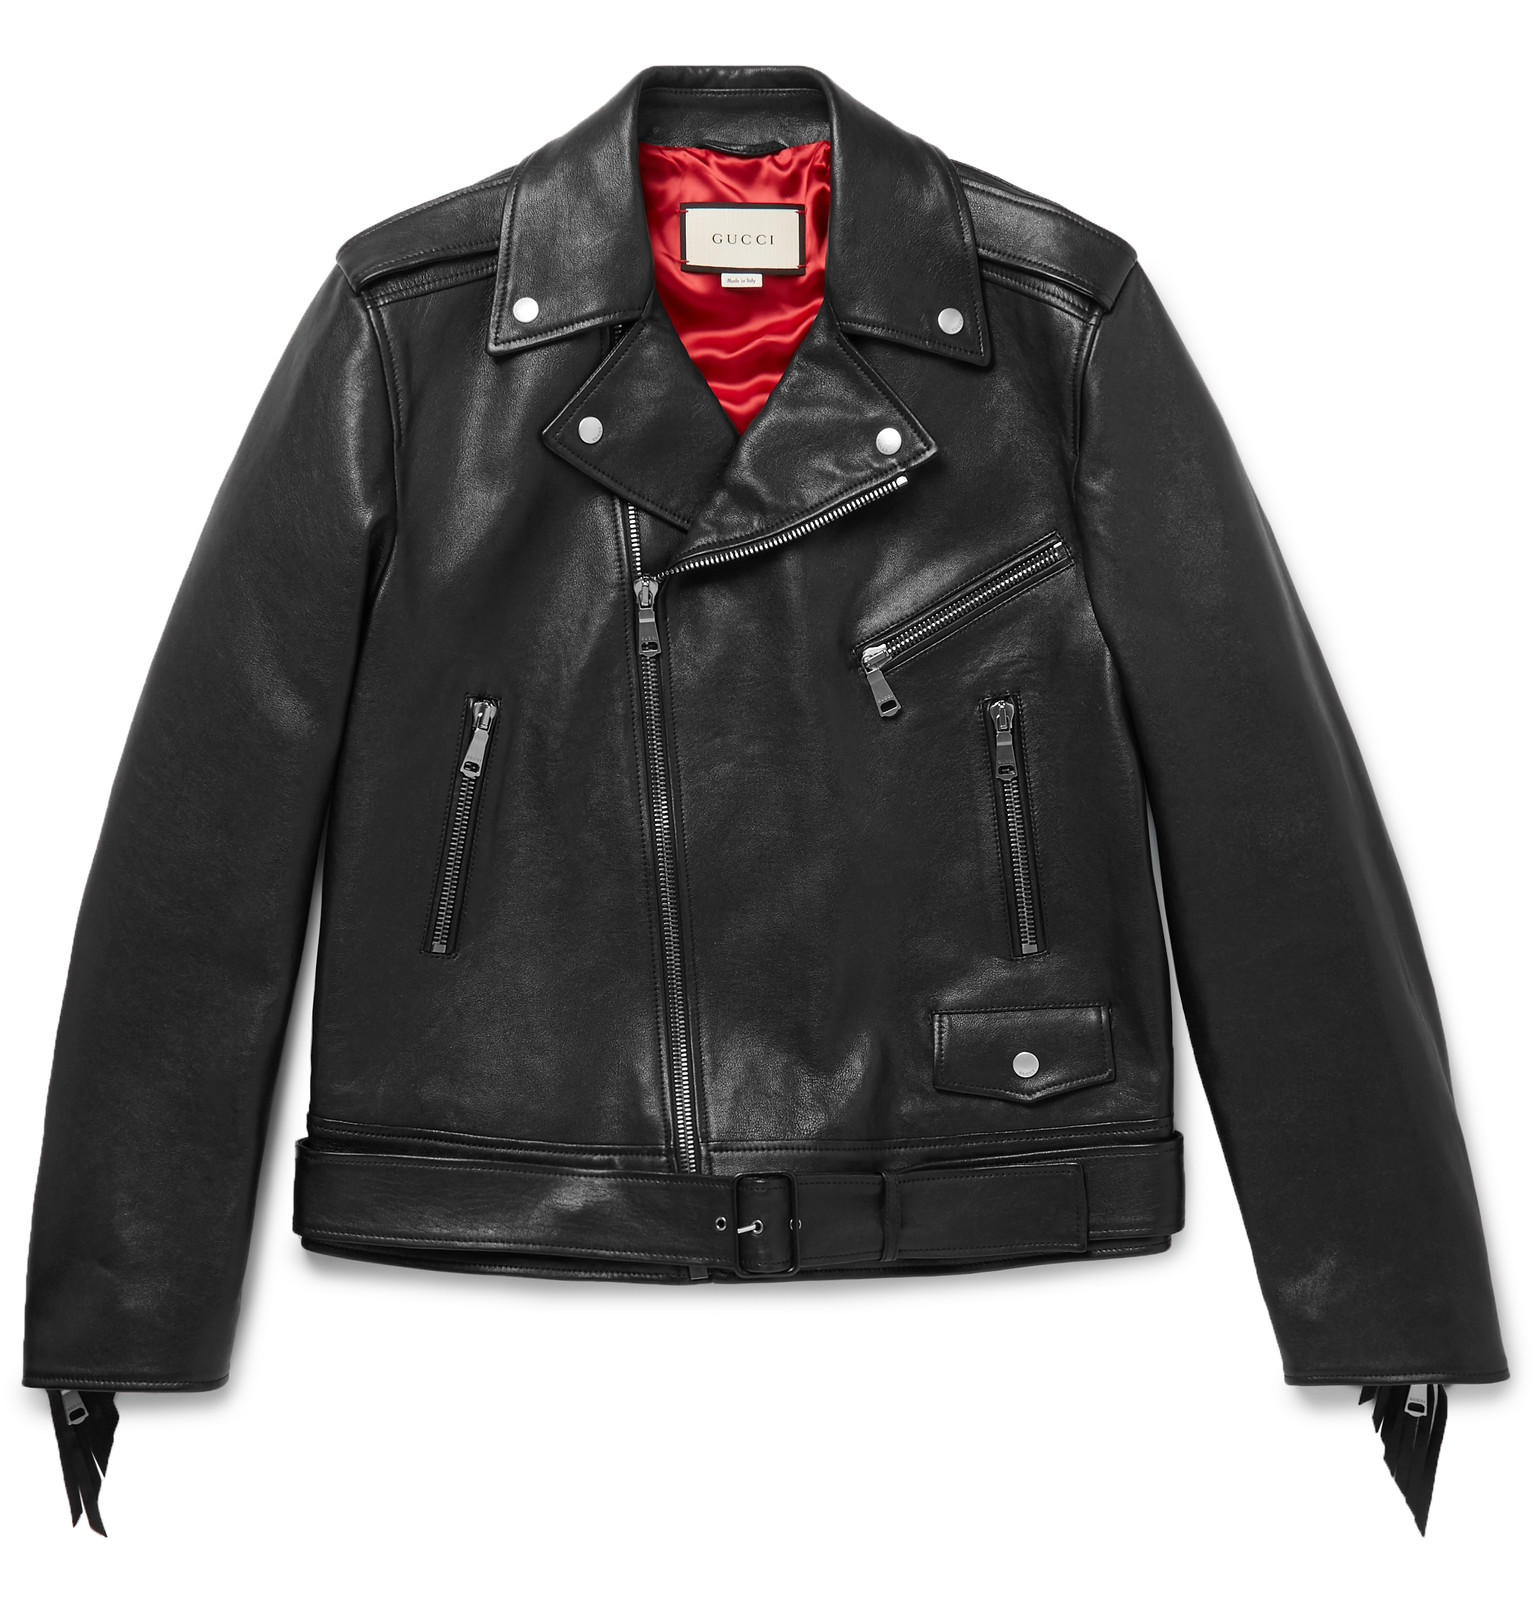 leather jackets gucci - patch-embellished fringed leather biker jacket WRXVSMV